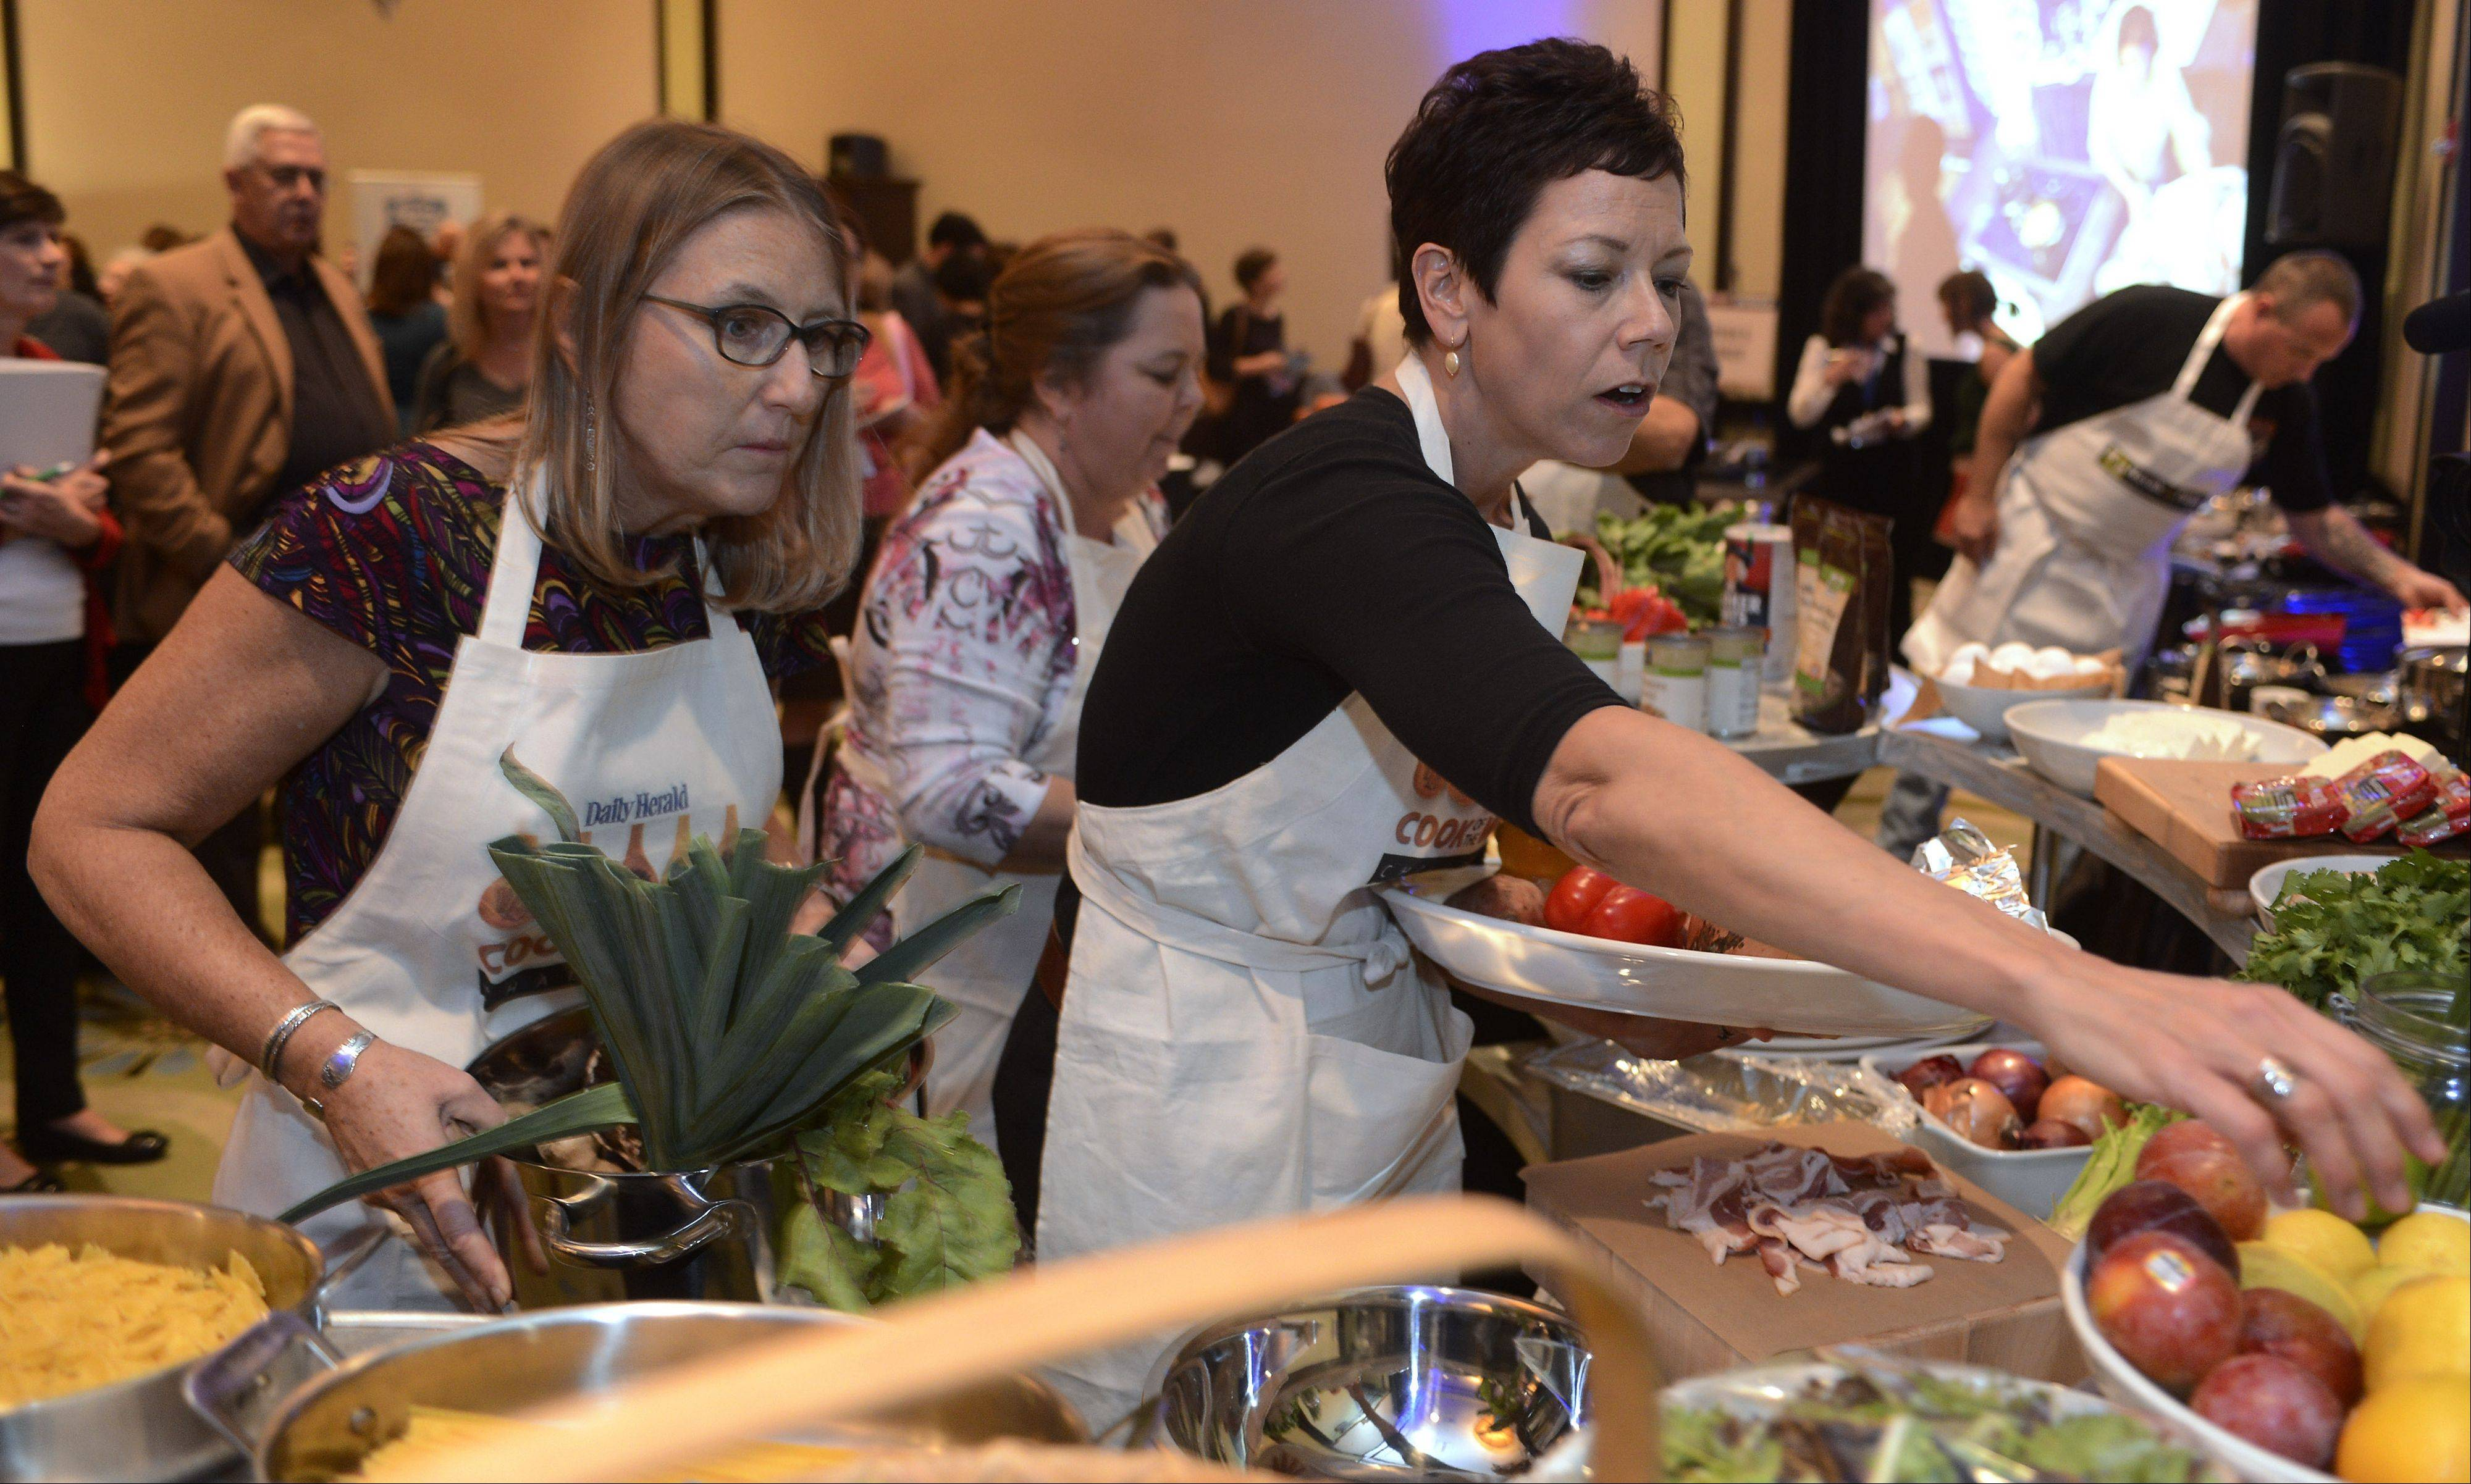 Contestants Christine Murphy, left, and Lori Motyka select items from the pantry during the Daily Herald Cook of the Week Cookoff finals, held at the Hyatt Regency Schaumburg Wednesday.